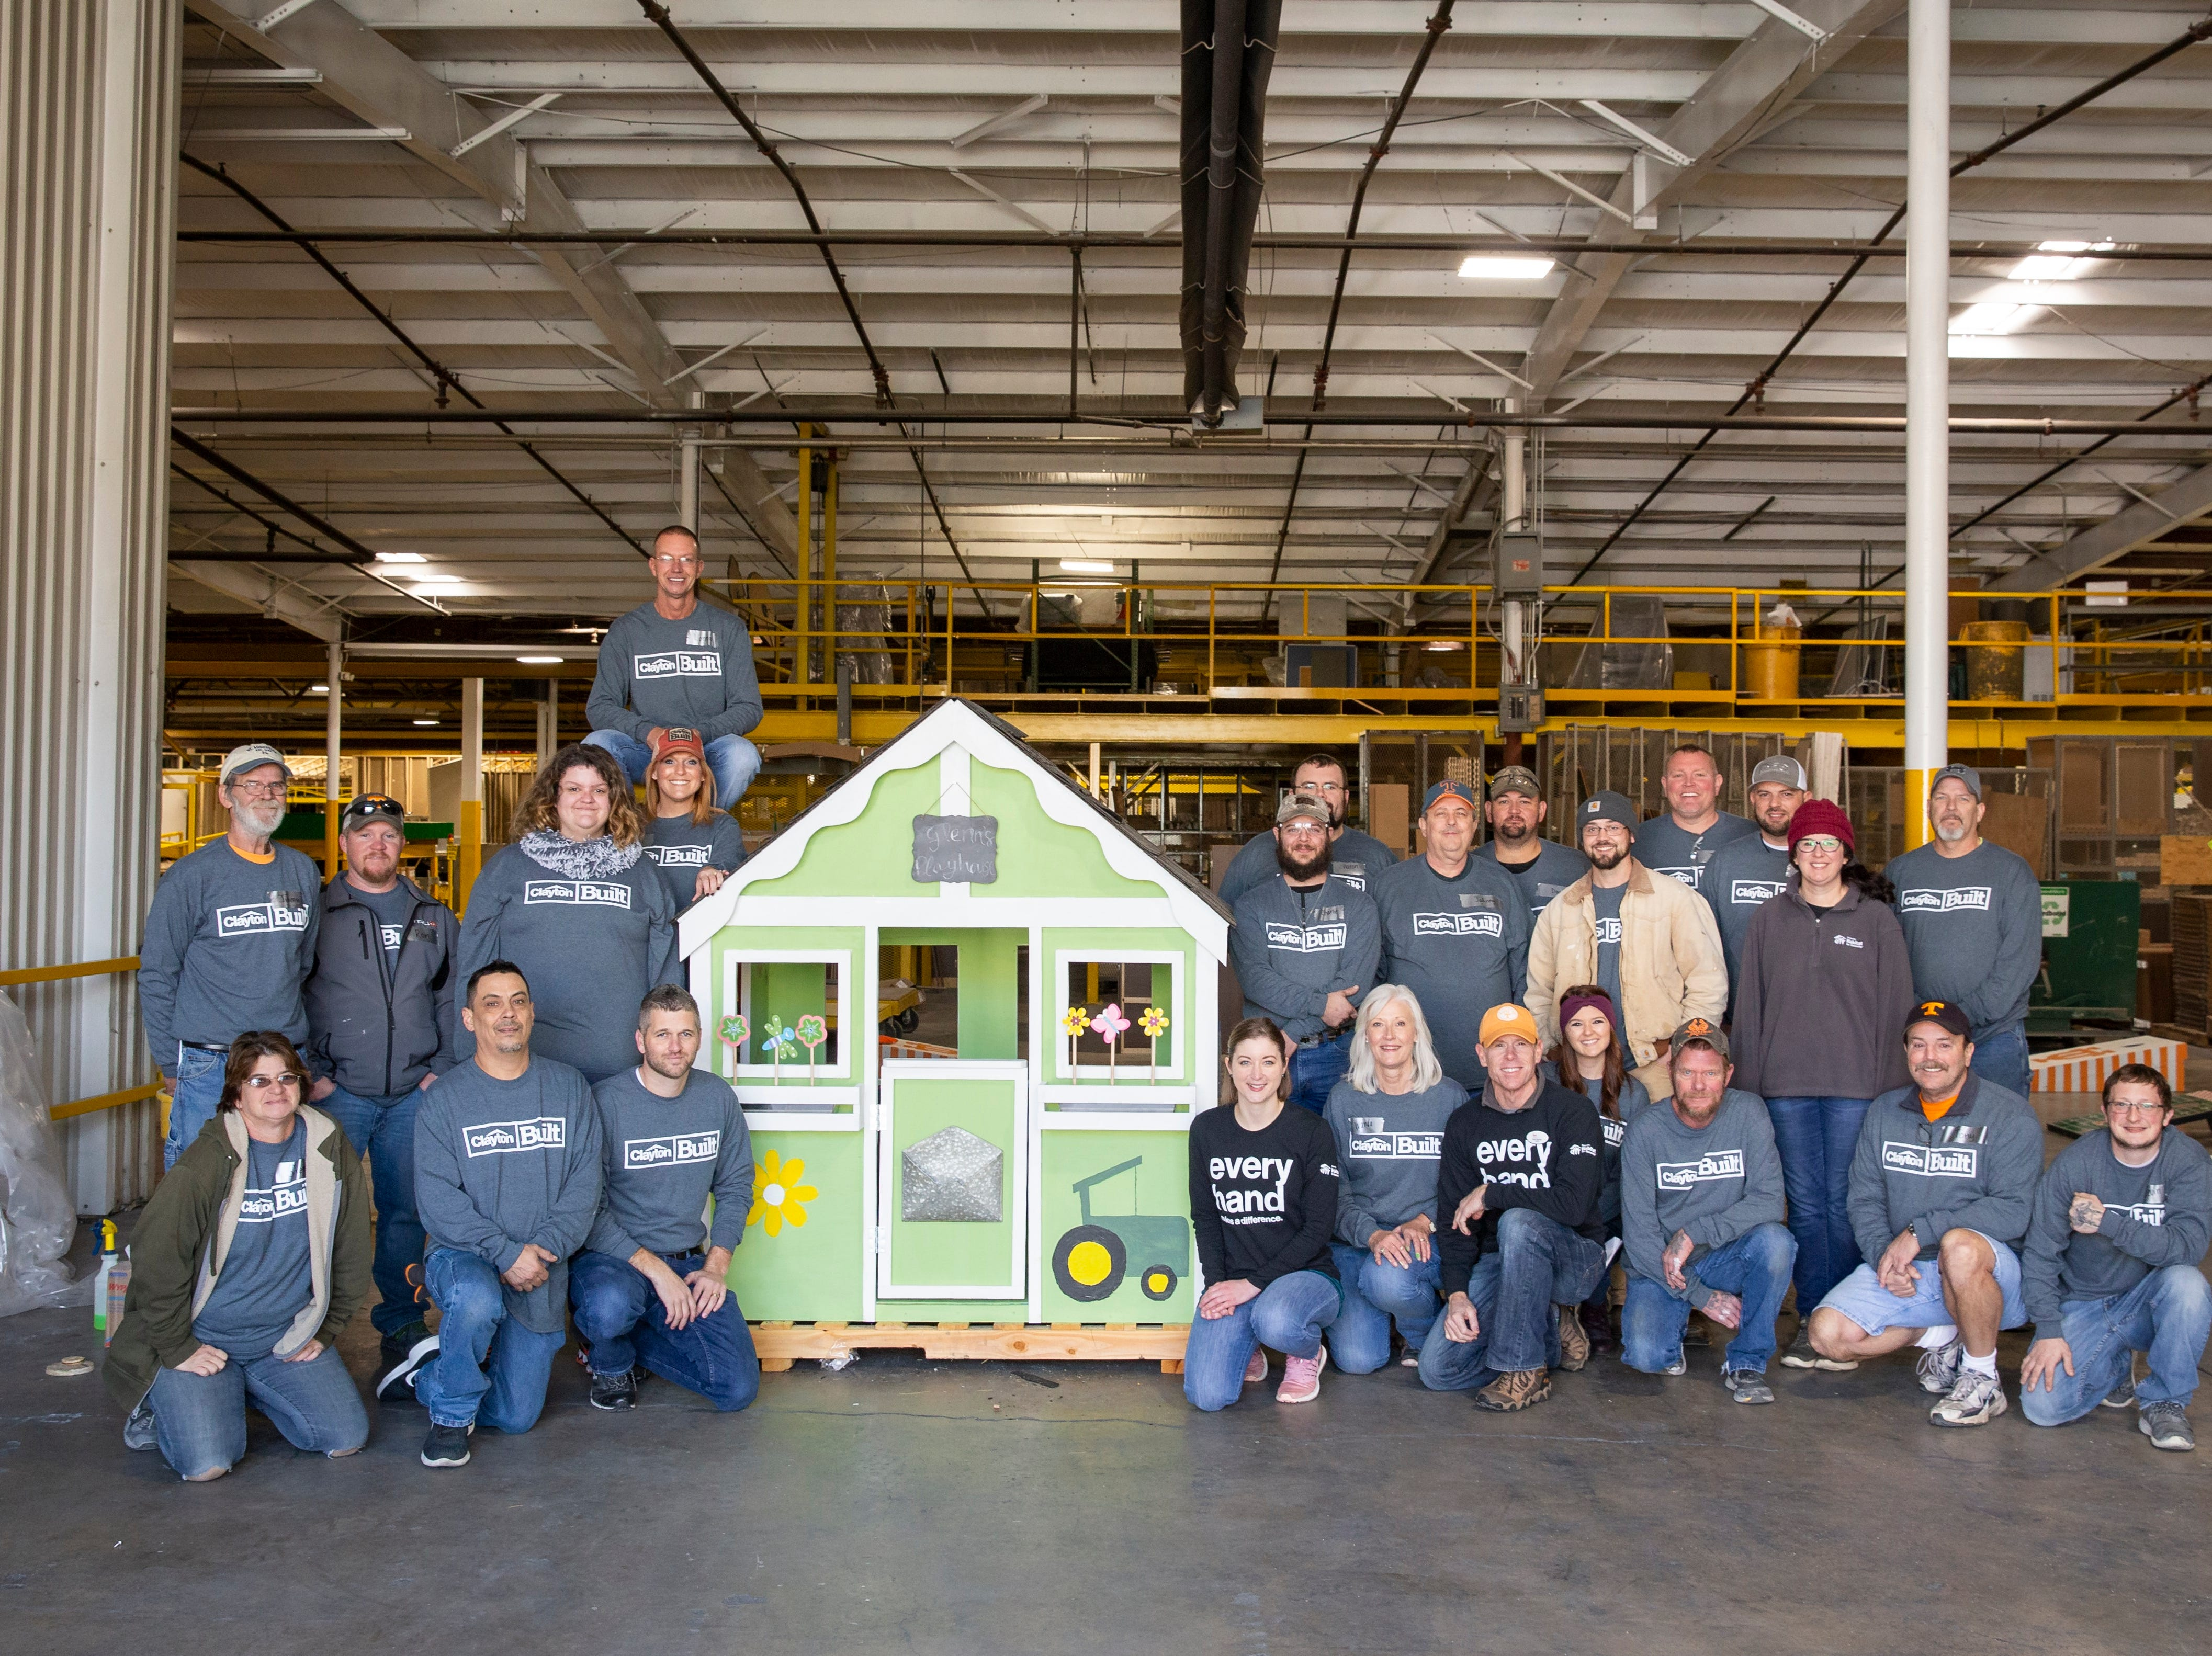 TRU Halls Team Members with Habitat for Humanity pictured here on Nov. 17 with the first completed Project Playhouse in Knoxville.